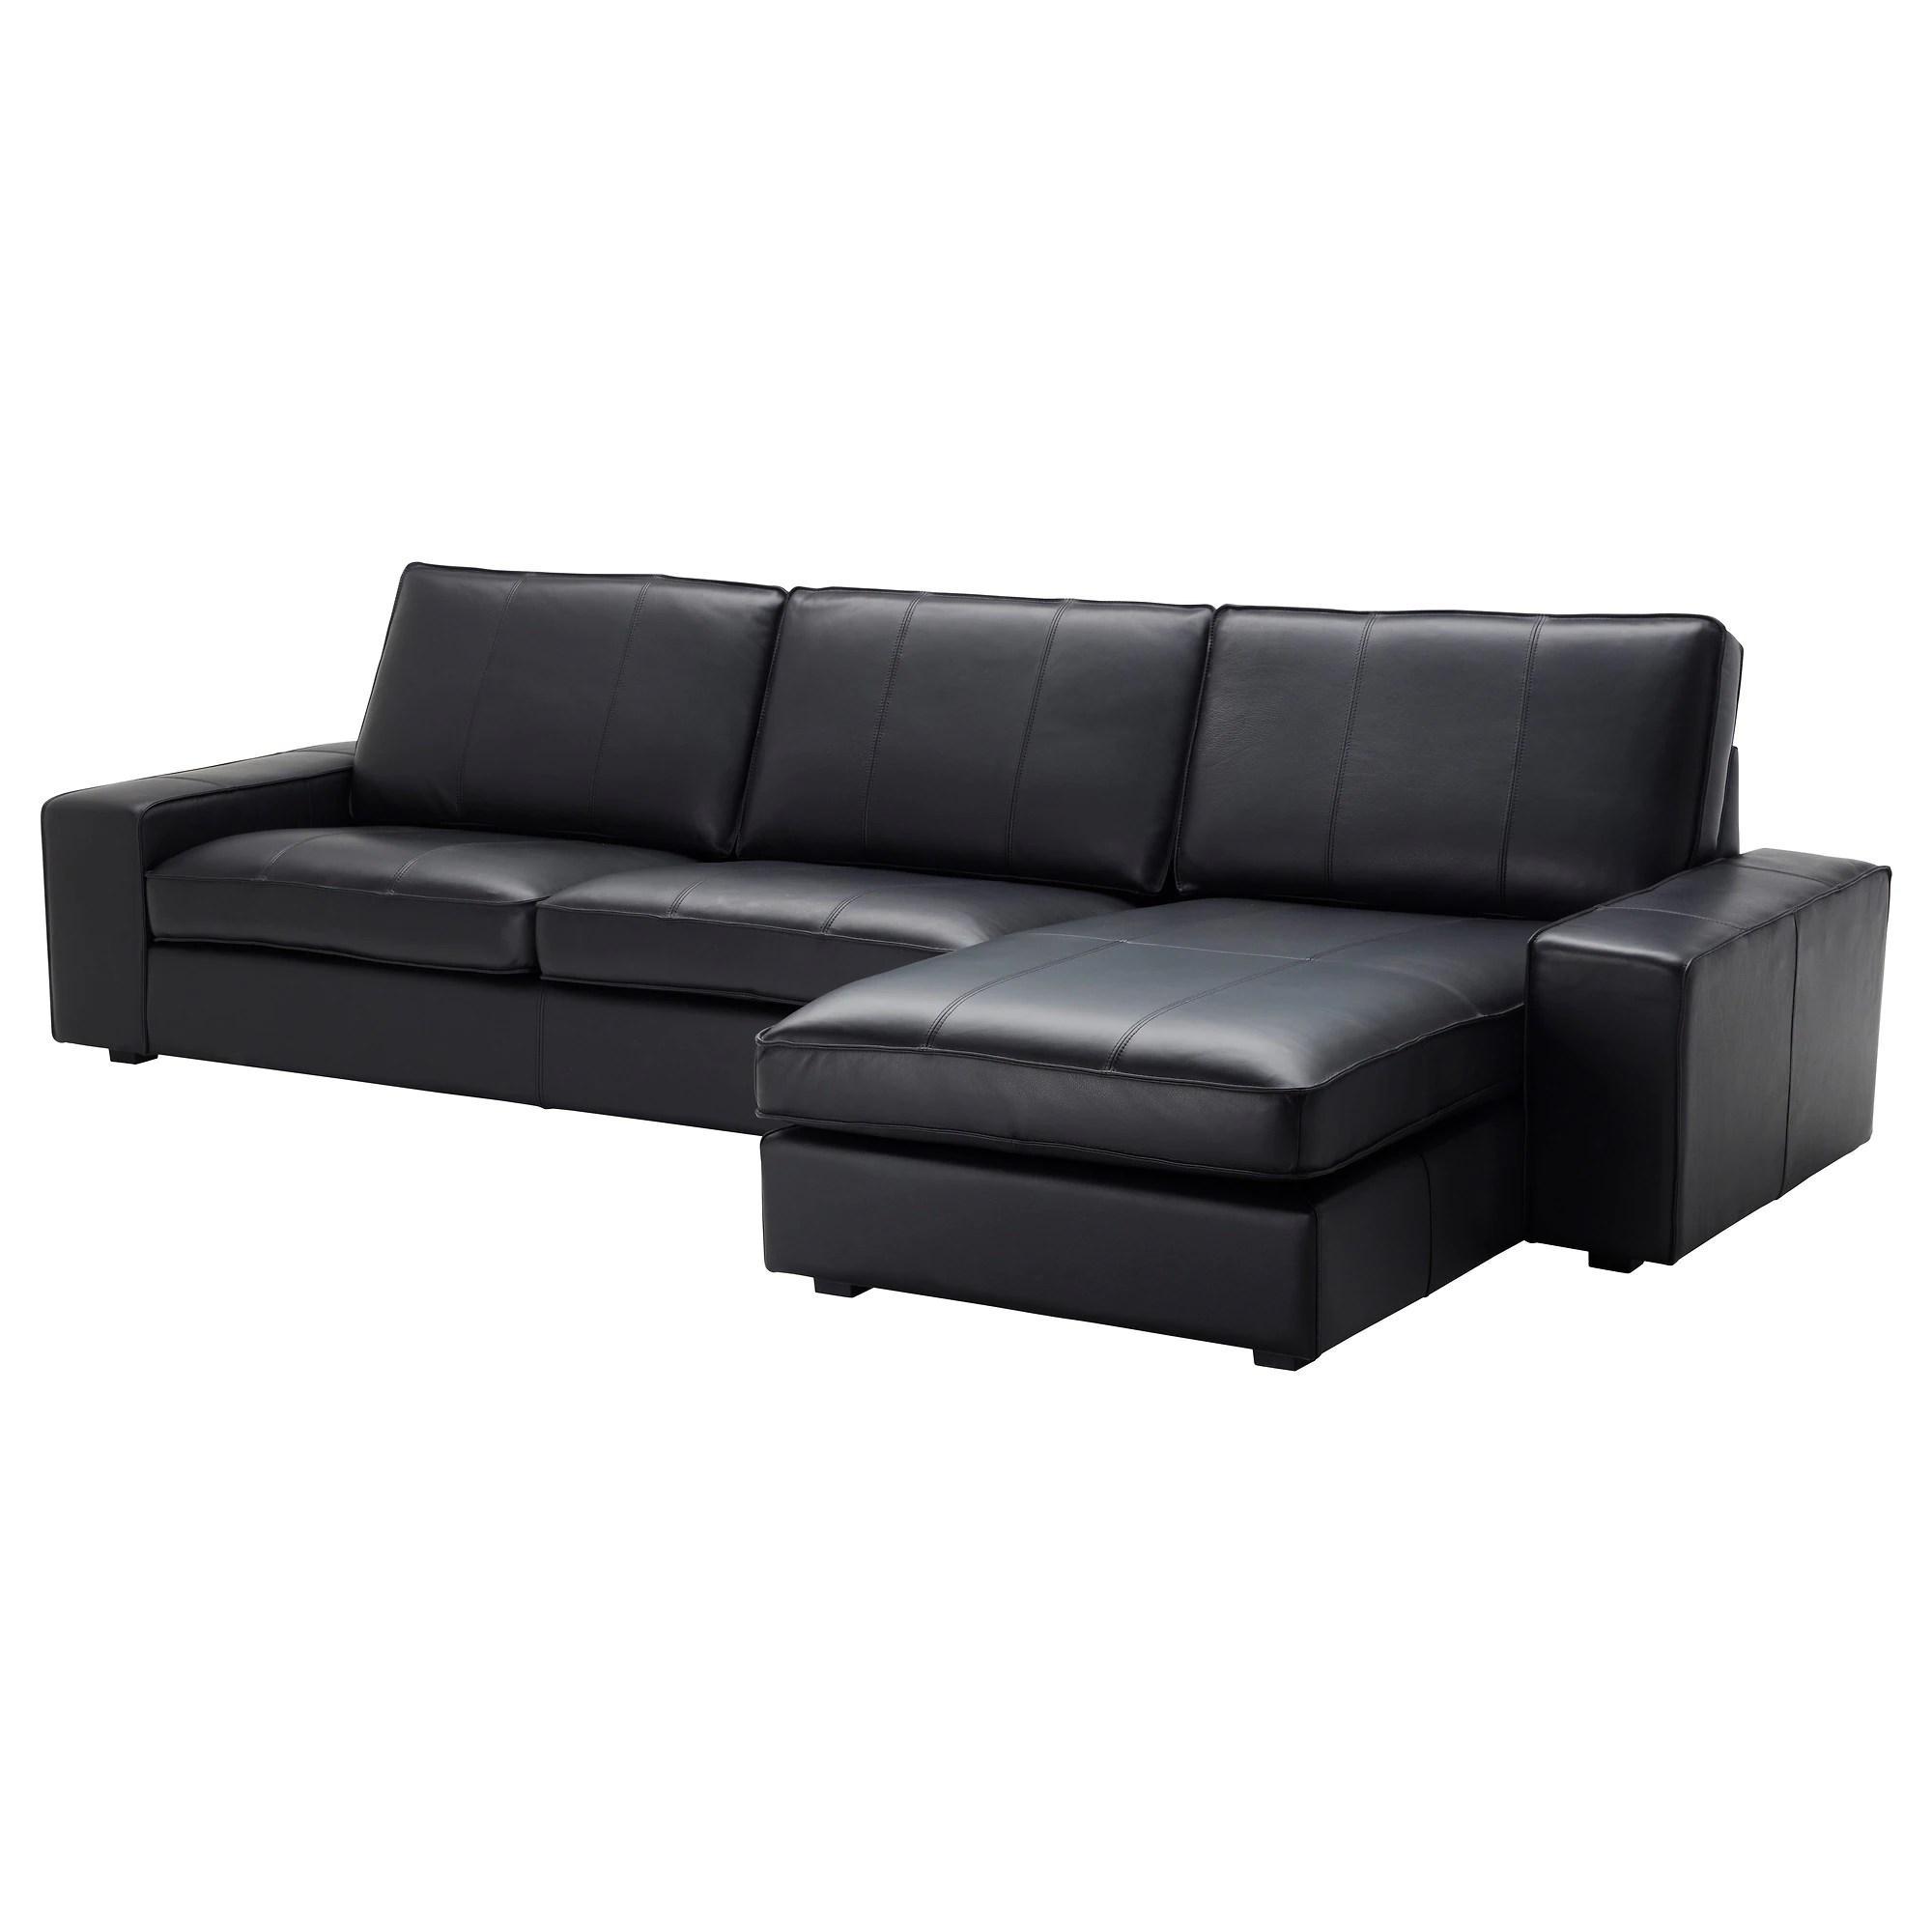 Kivik Sectional Kivik Sectional 4 Seat With Chaise Grann Bomstad Grann Bomstad Dark Brown